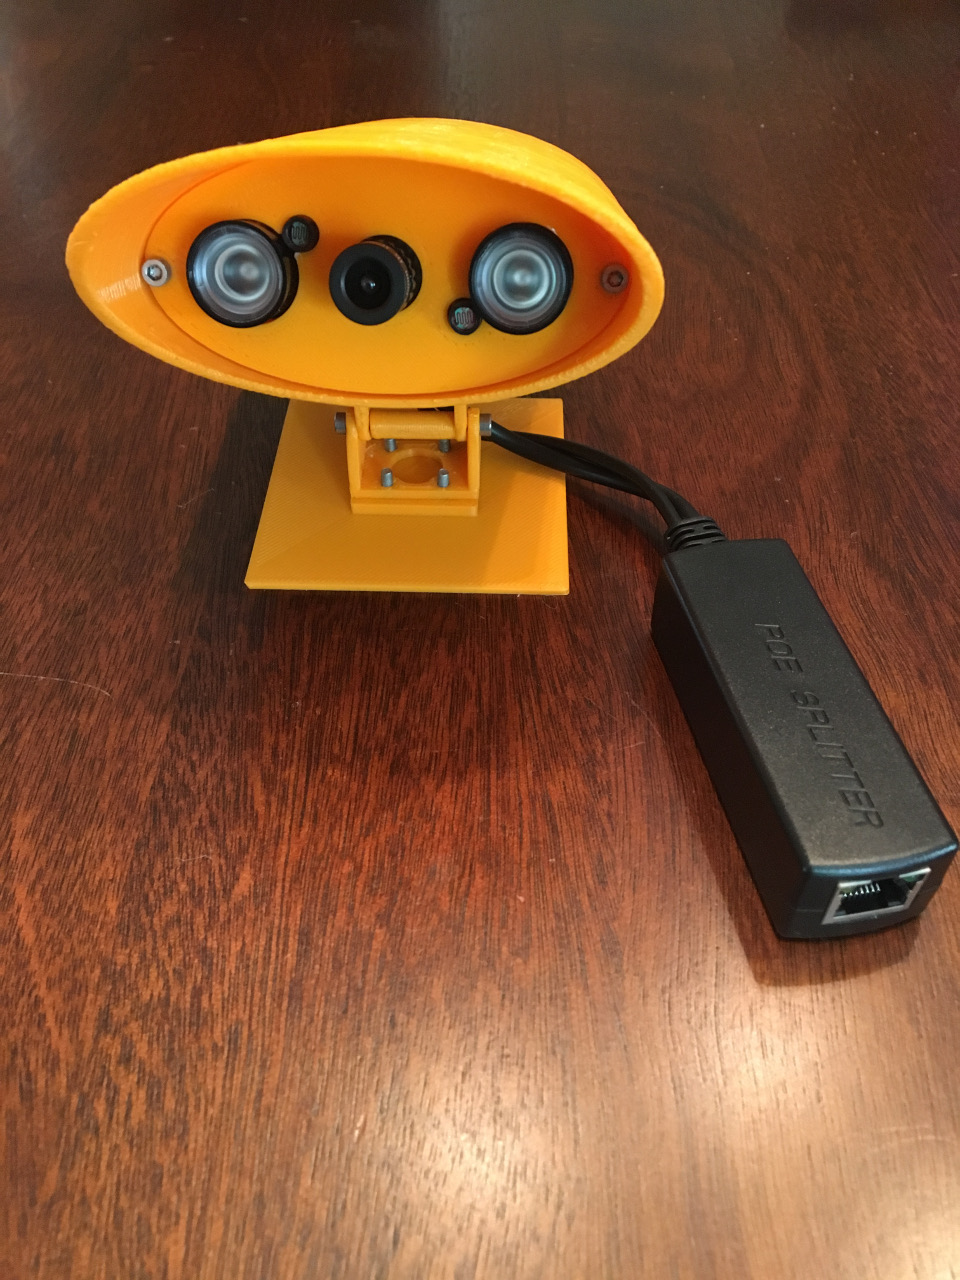 Pi Security Camera v2 - Front